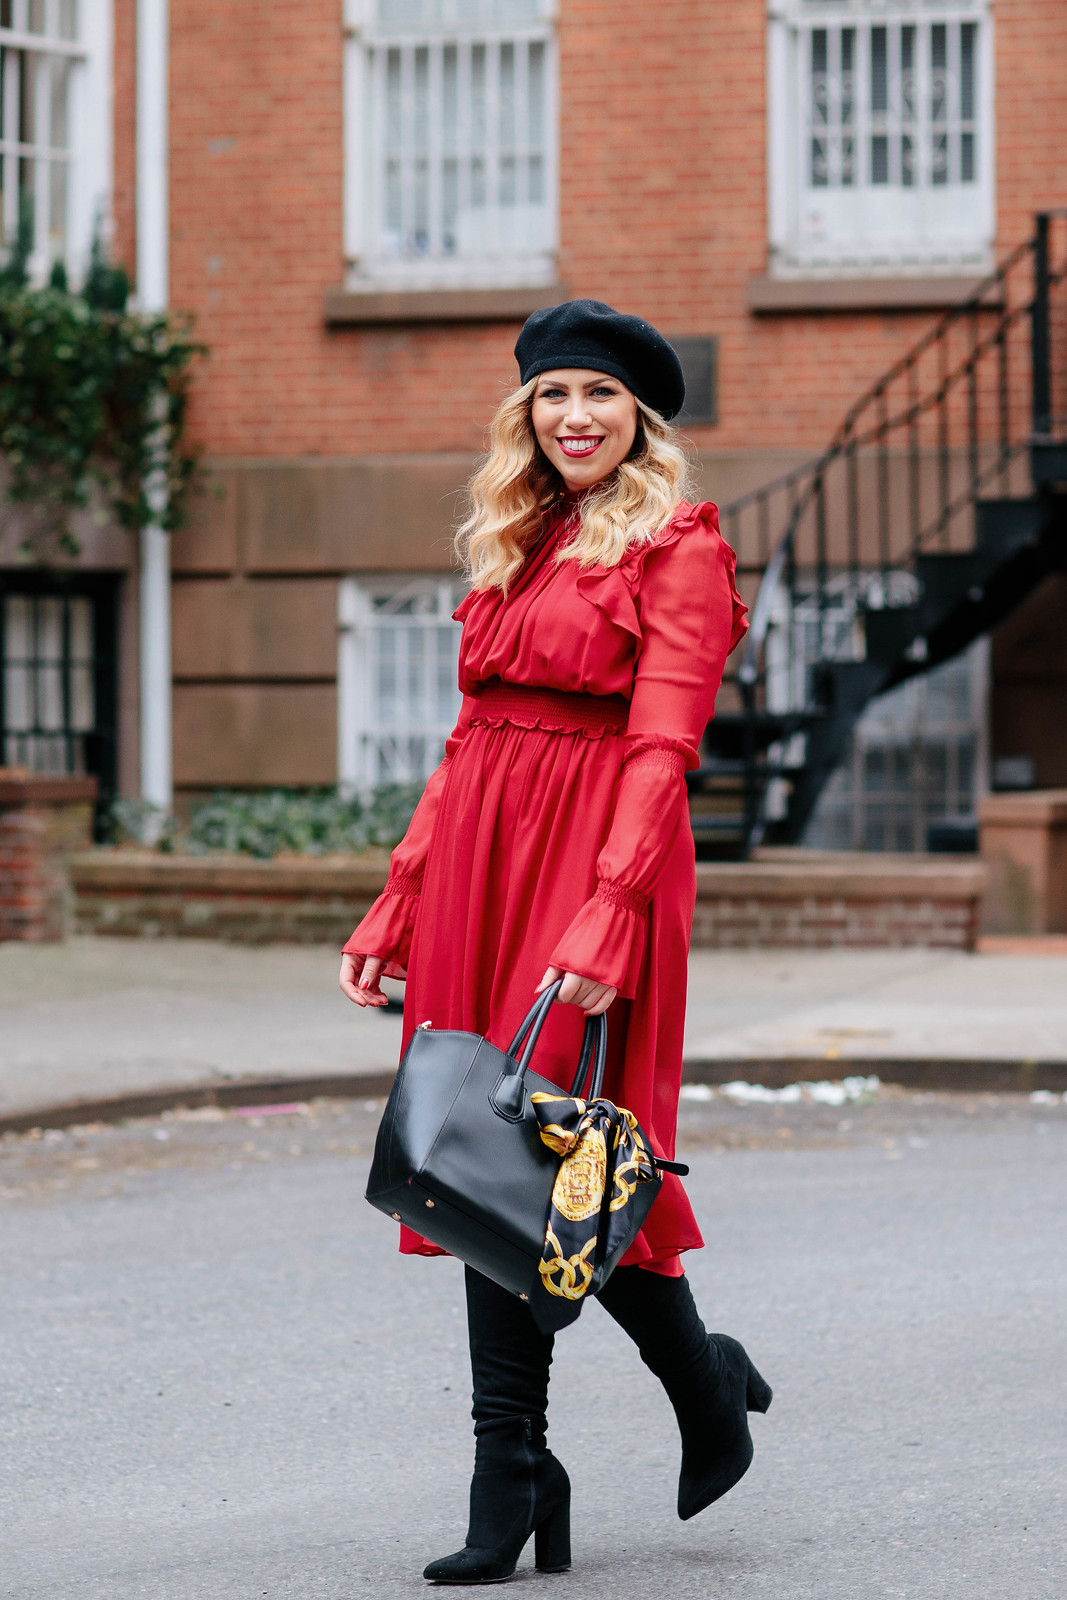 Lady in Red Red Midi Dress Black Beret Over the Knee Boots Winter NYFW Outfit Style